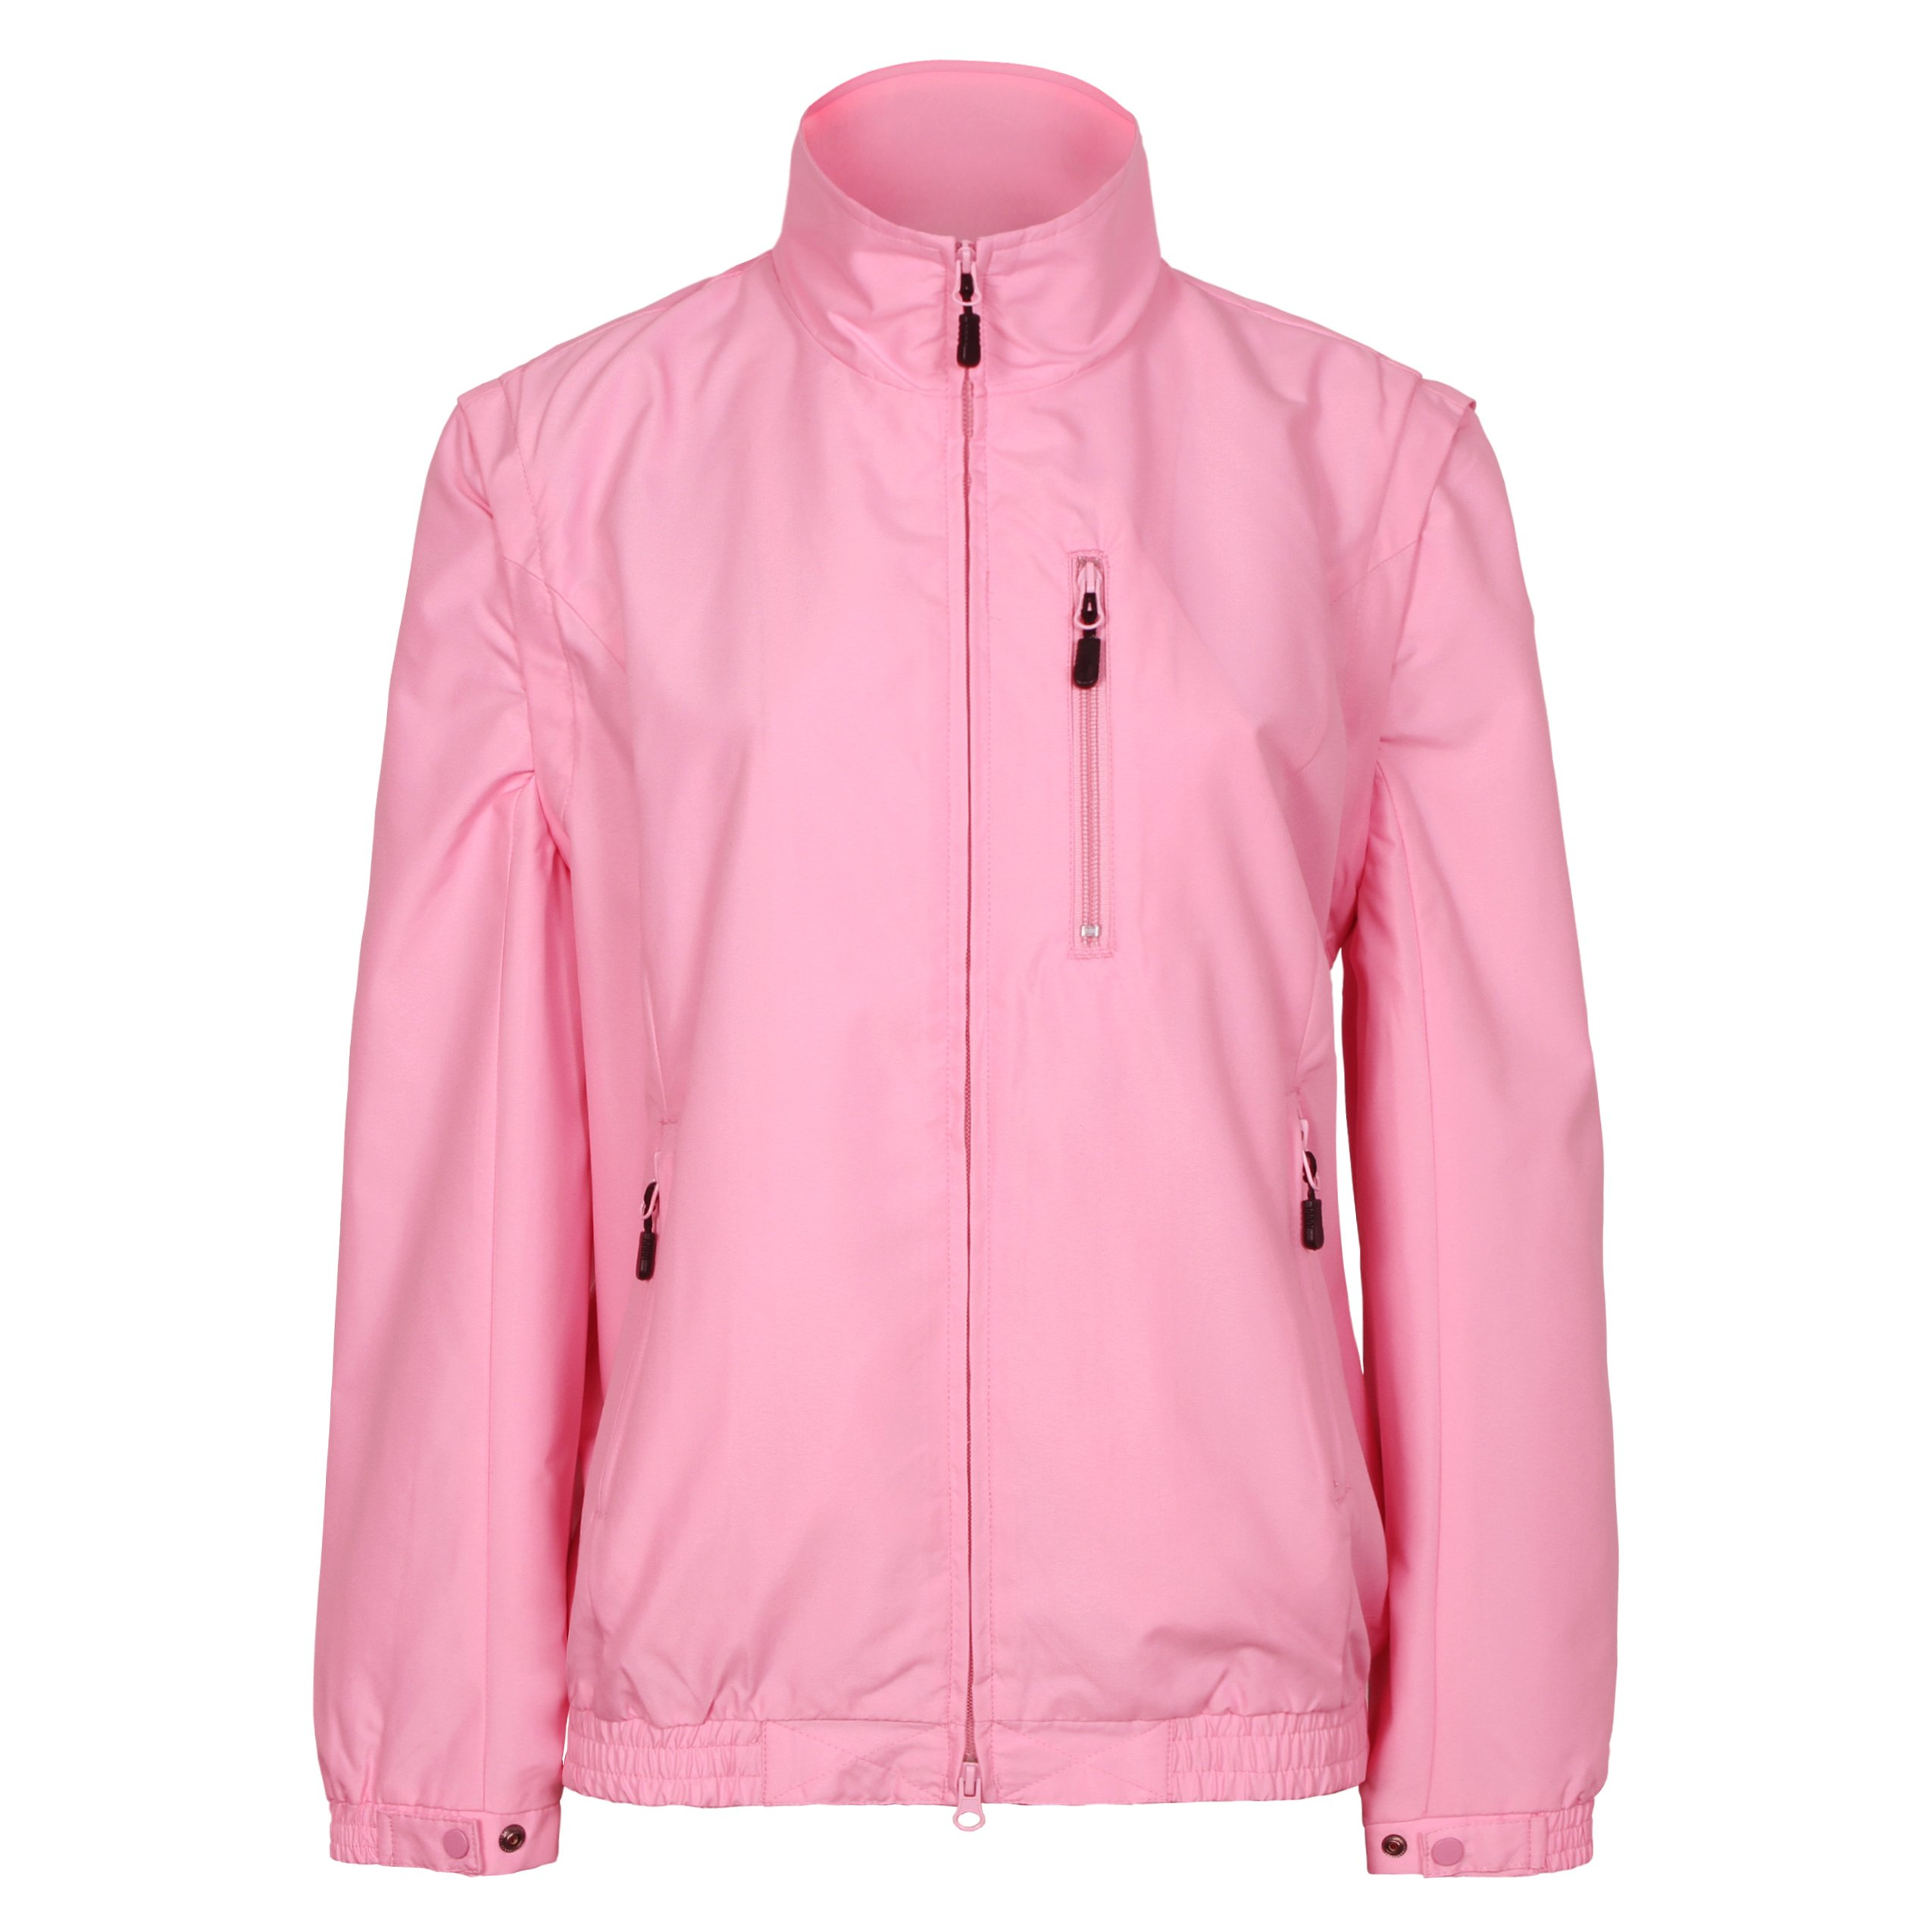 Tres Bien Golf Women's 2 in 1 Convertible Jacket / Vest (Medium, Pink) by Tres Bien Golf